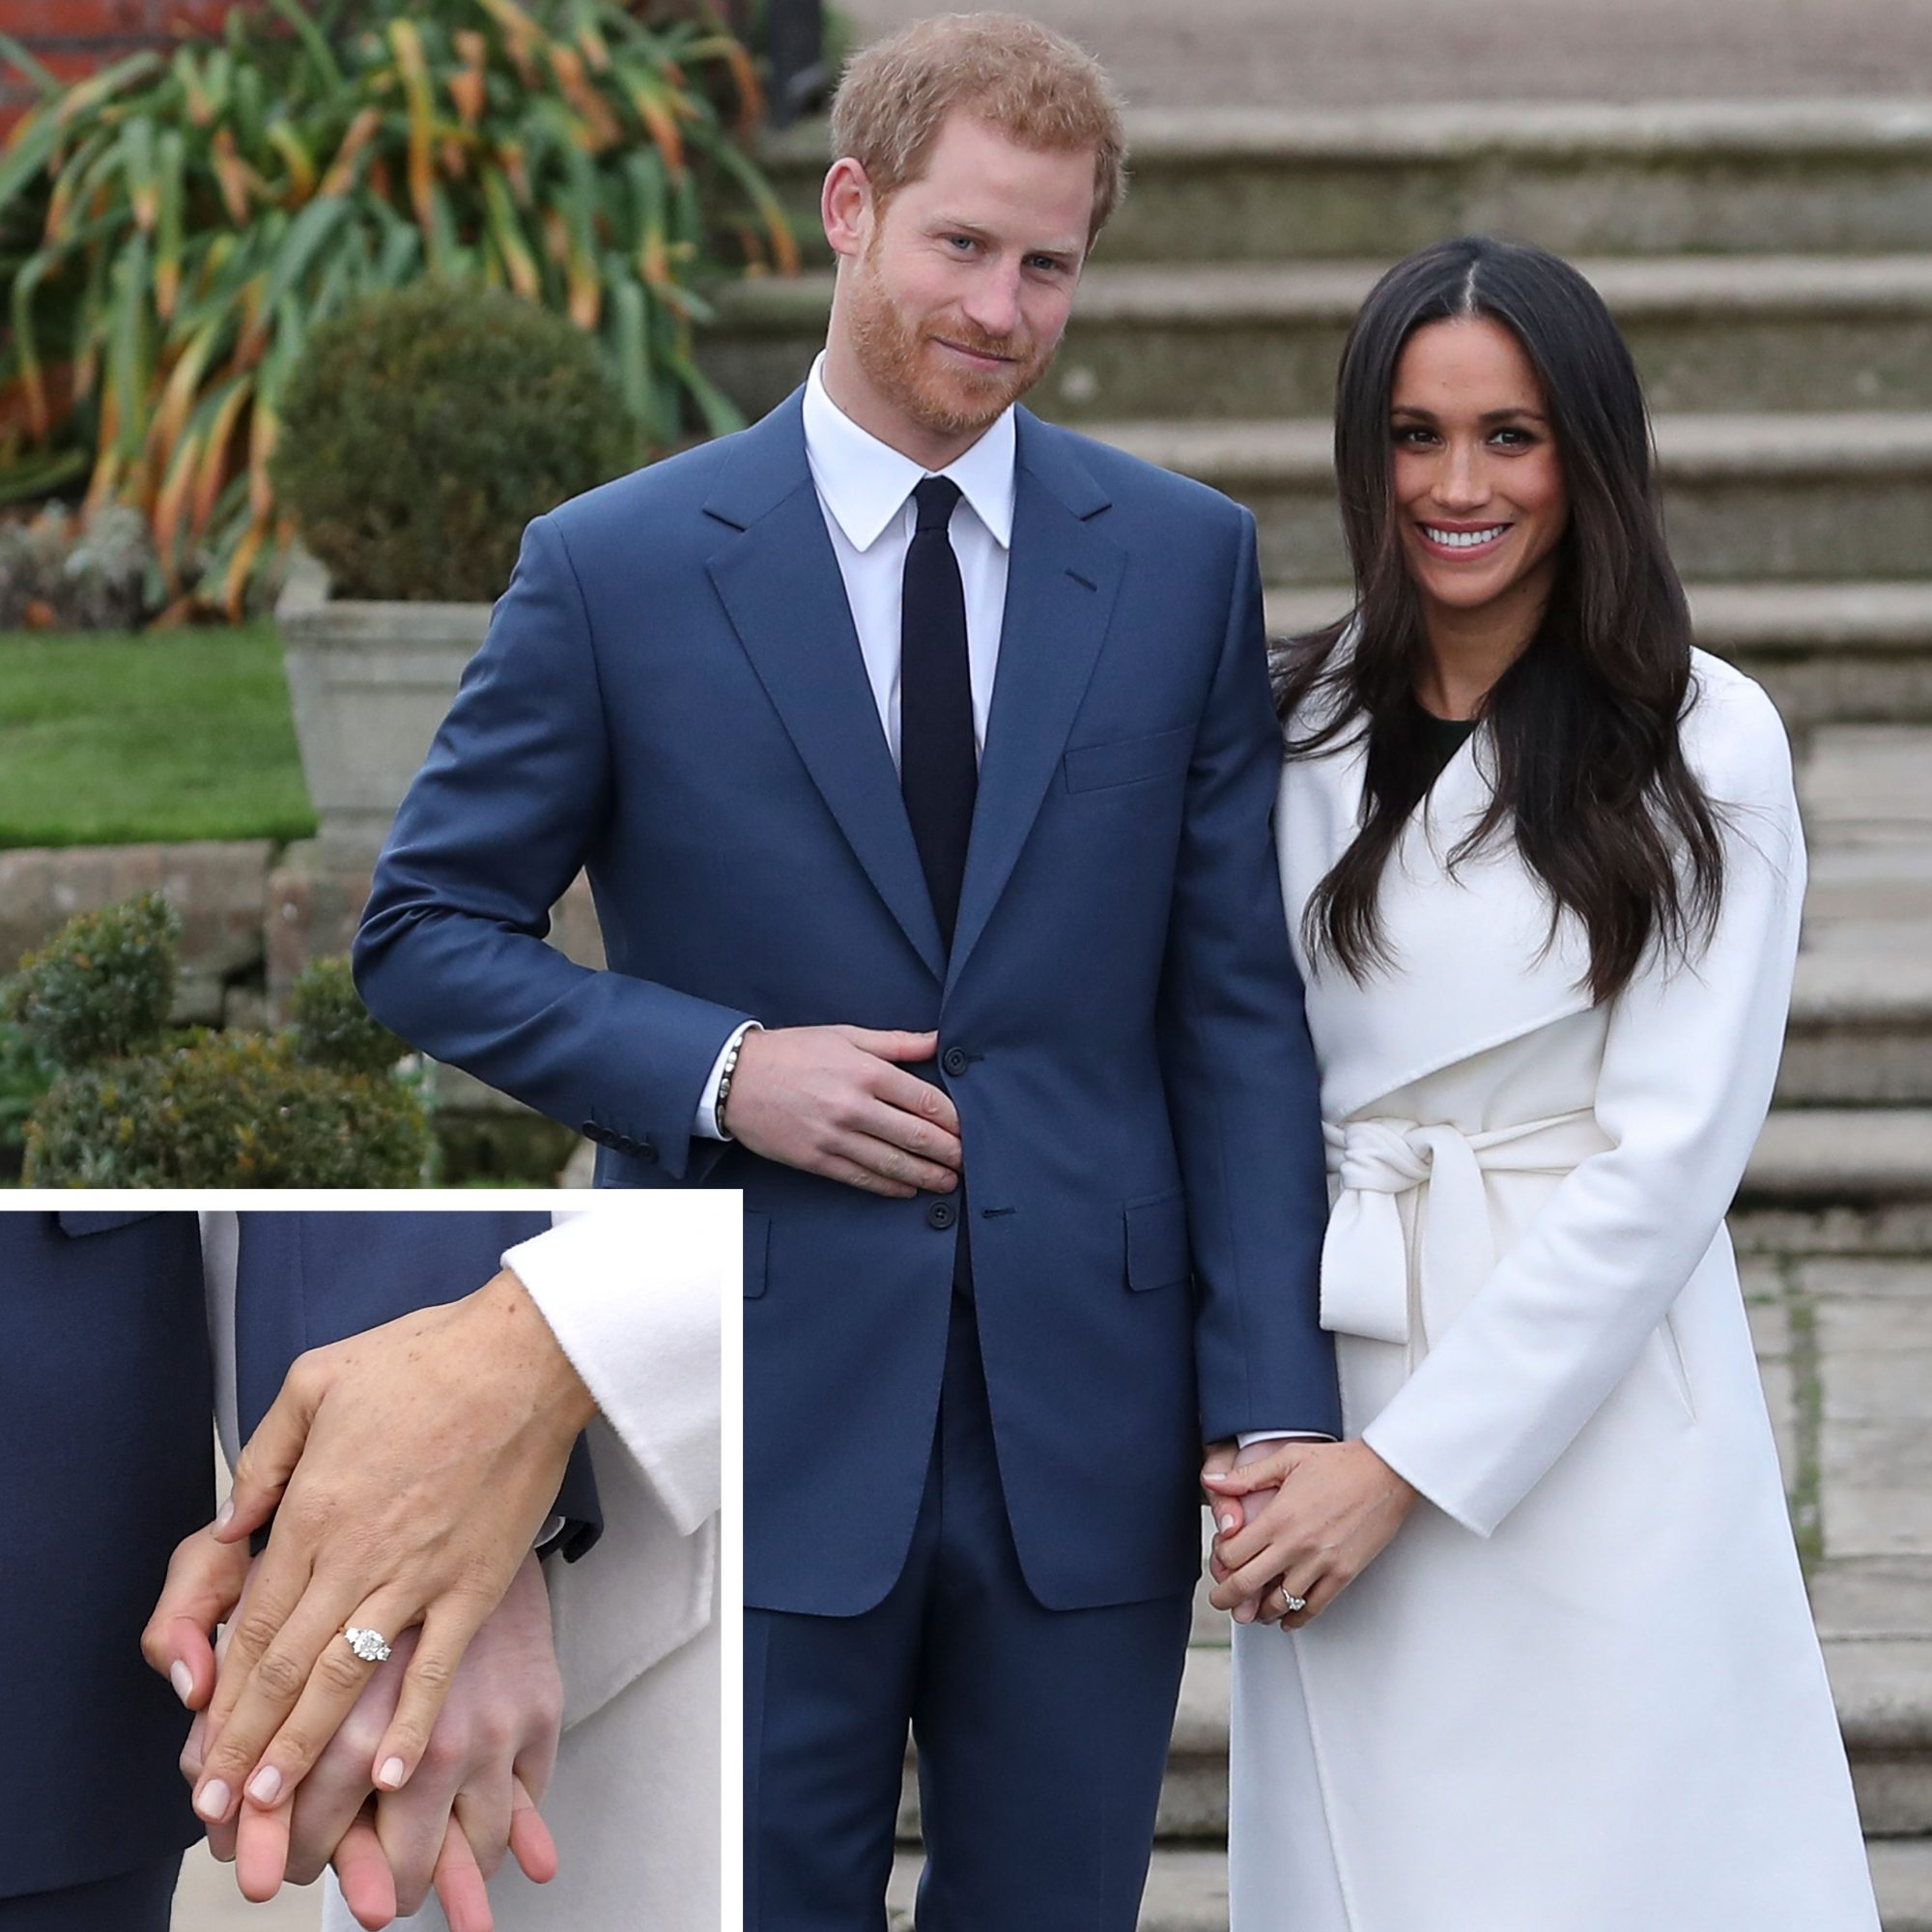 Prince Harry and Meghan Markle with Detail Shot of Engagement Ring